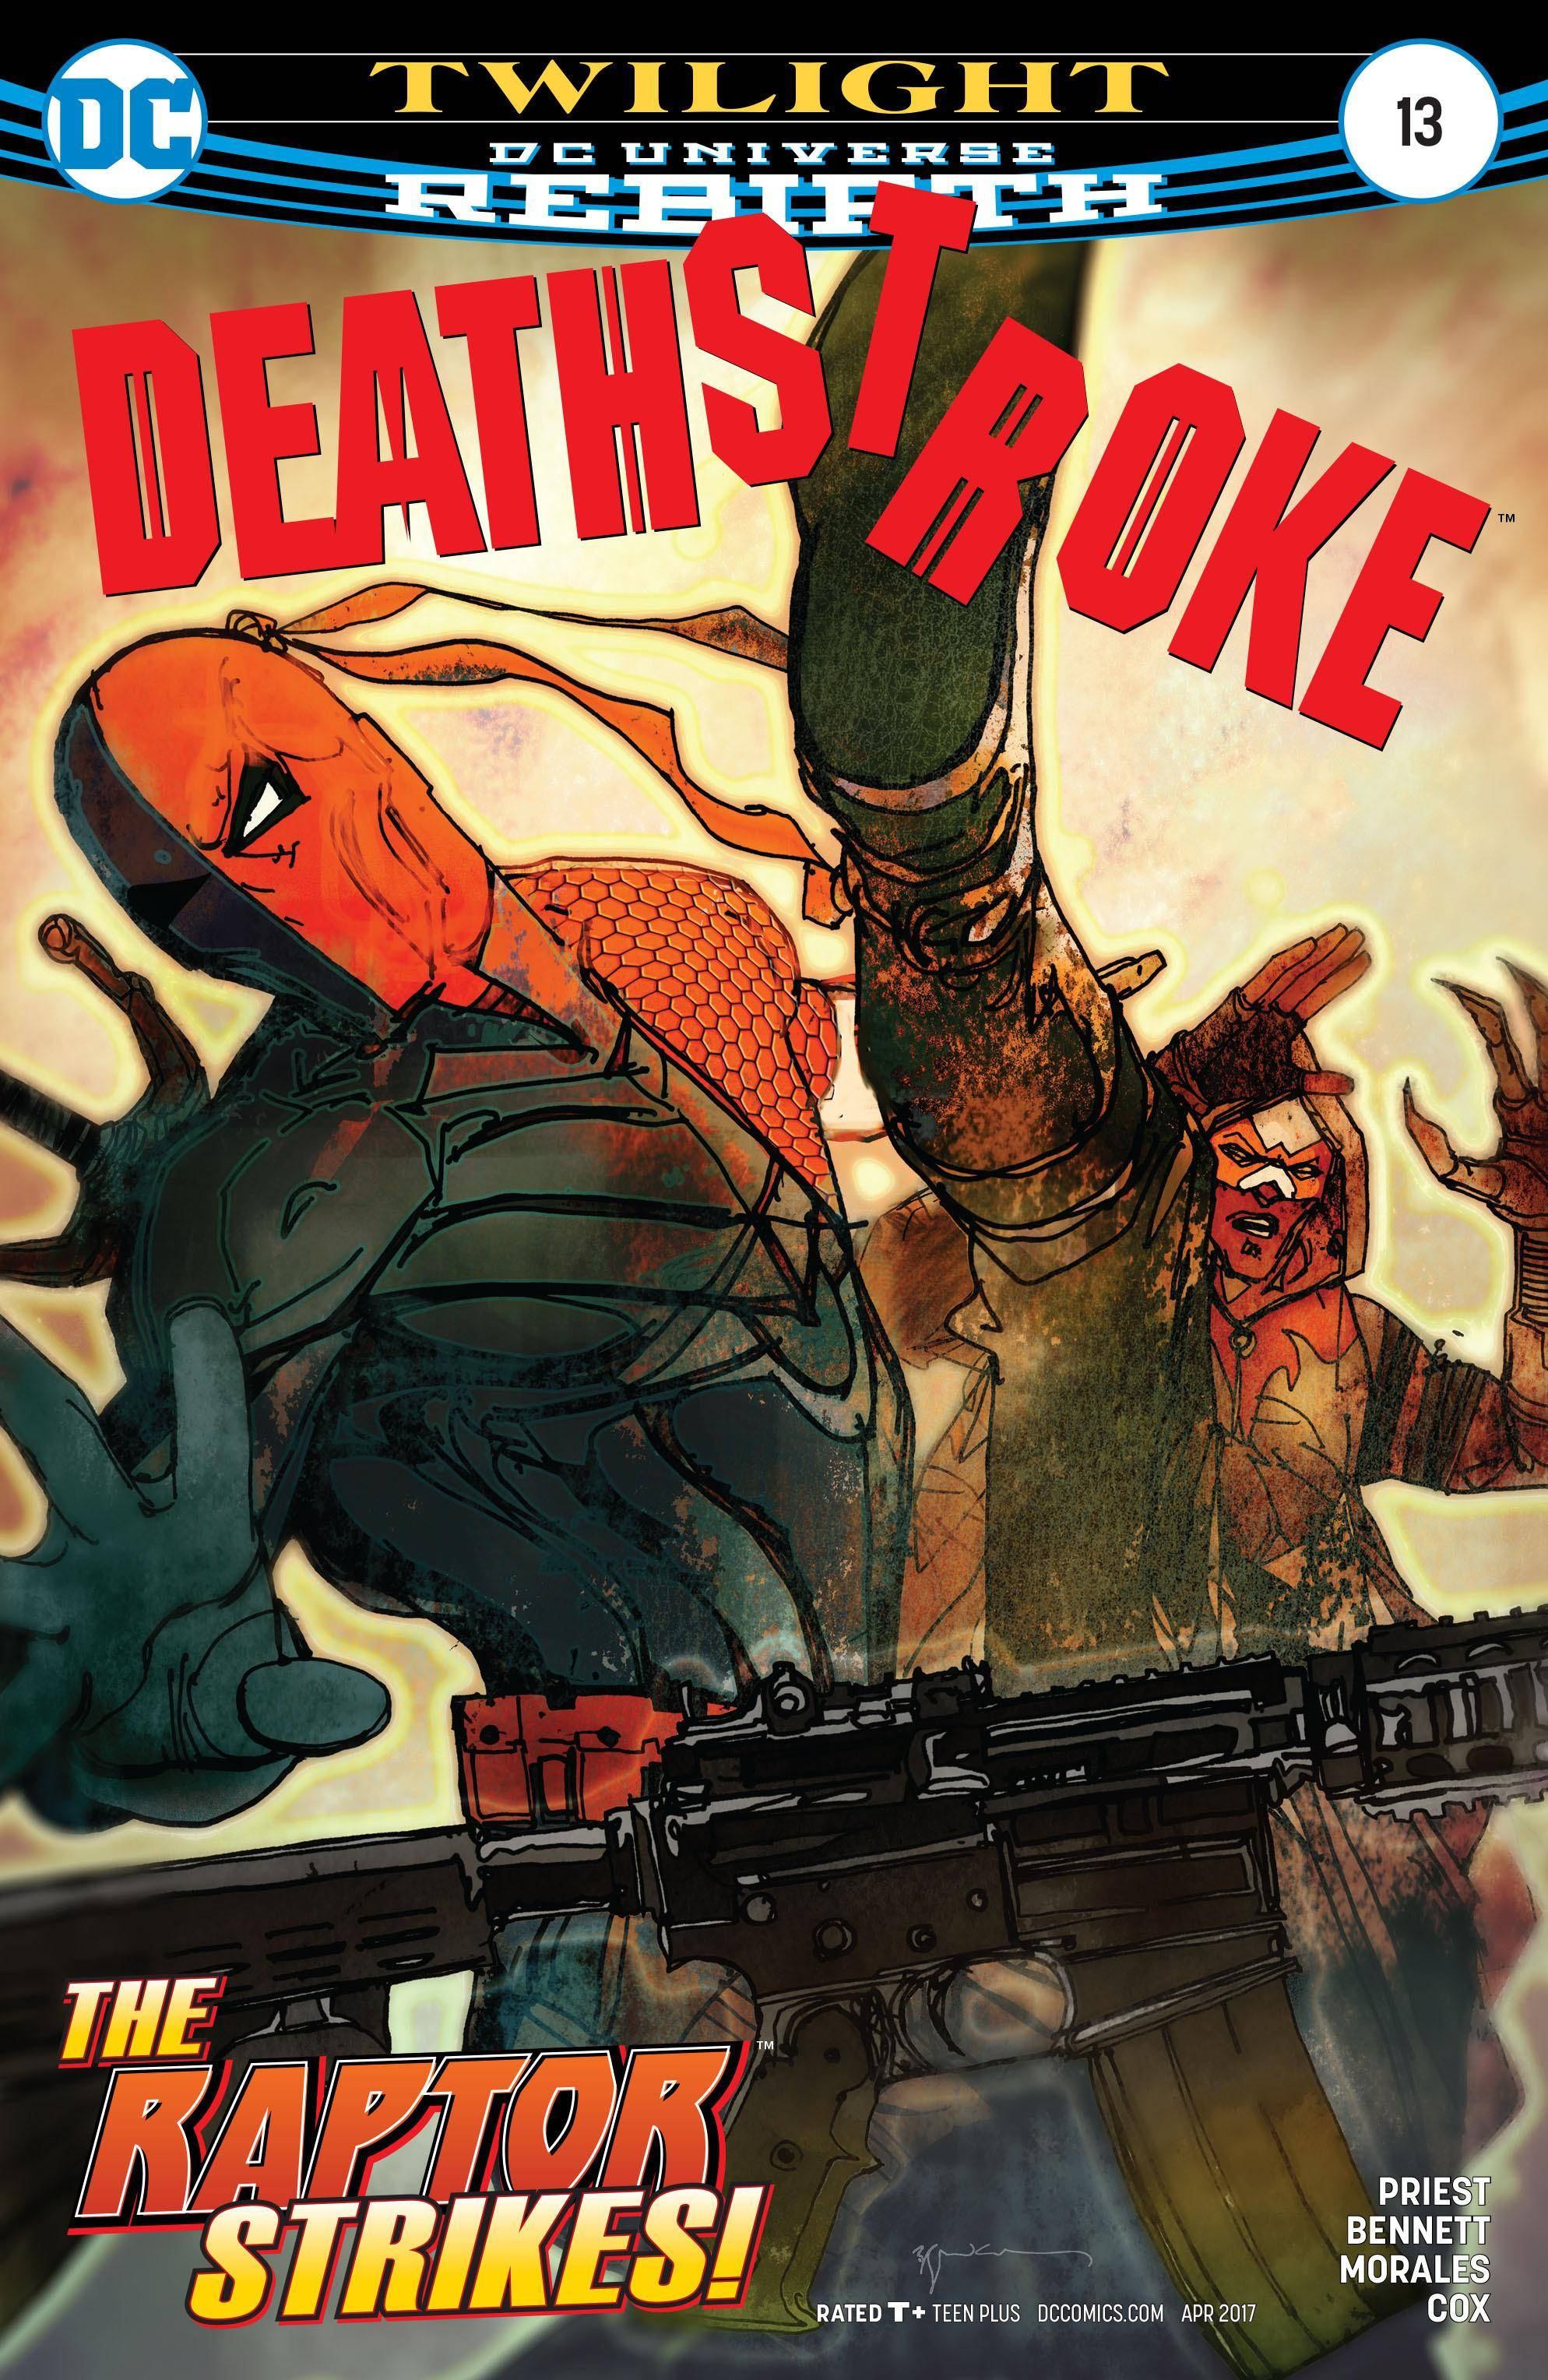 Deathstroke 013 2017 2 covers Digital Zone-Empire